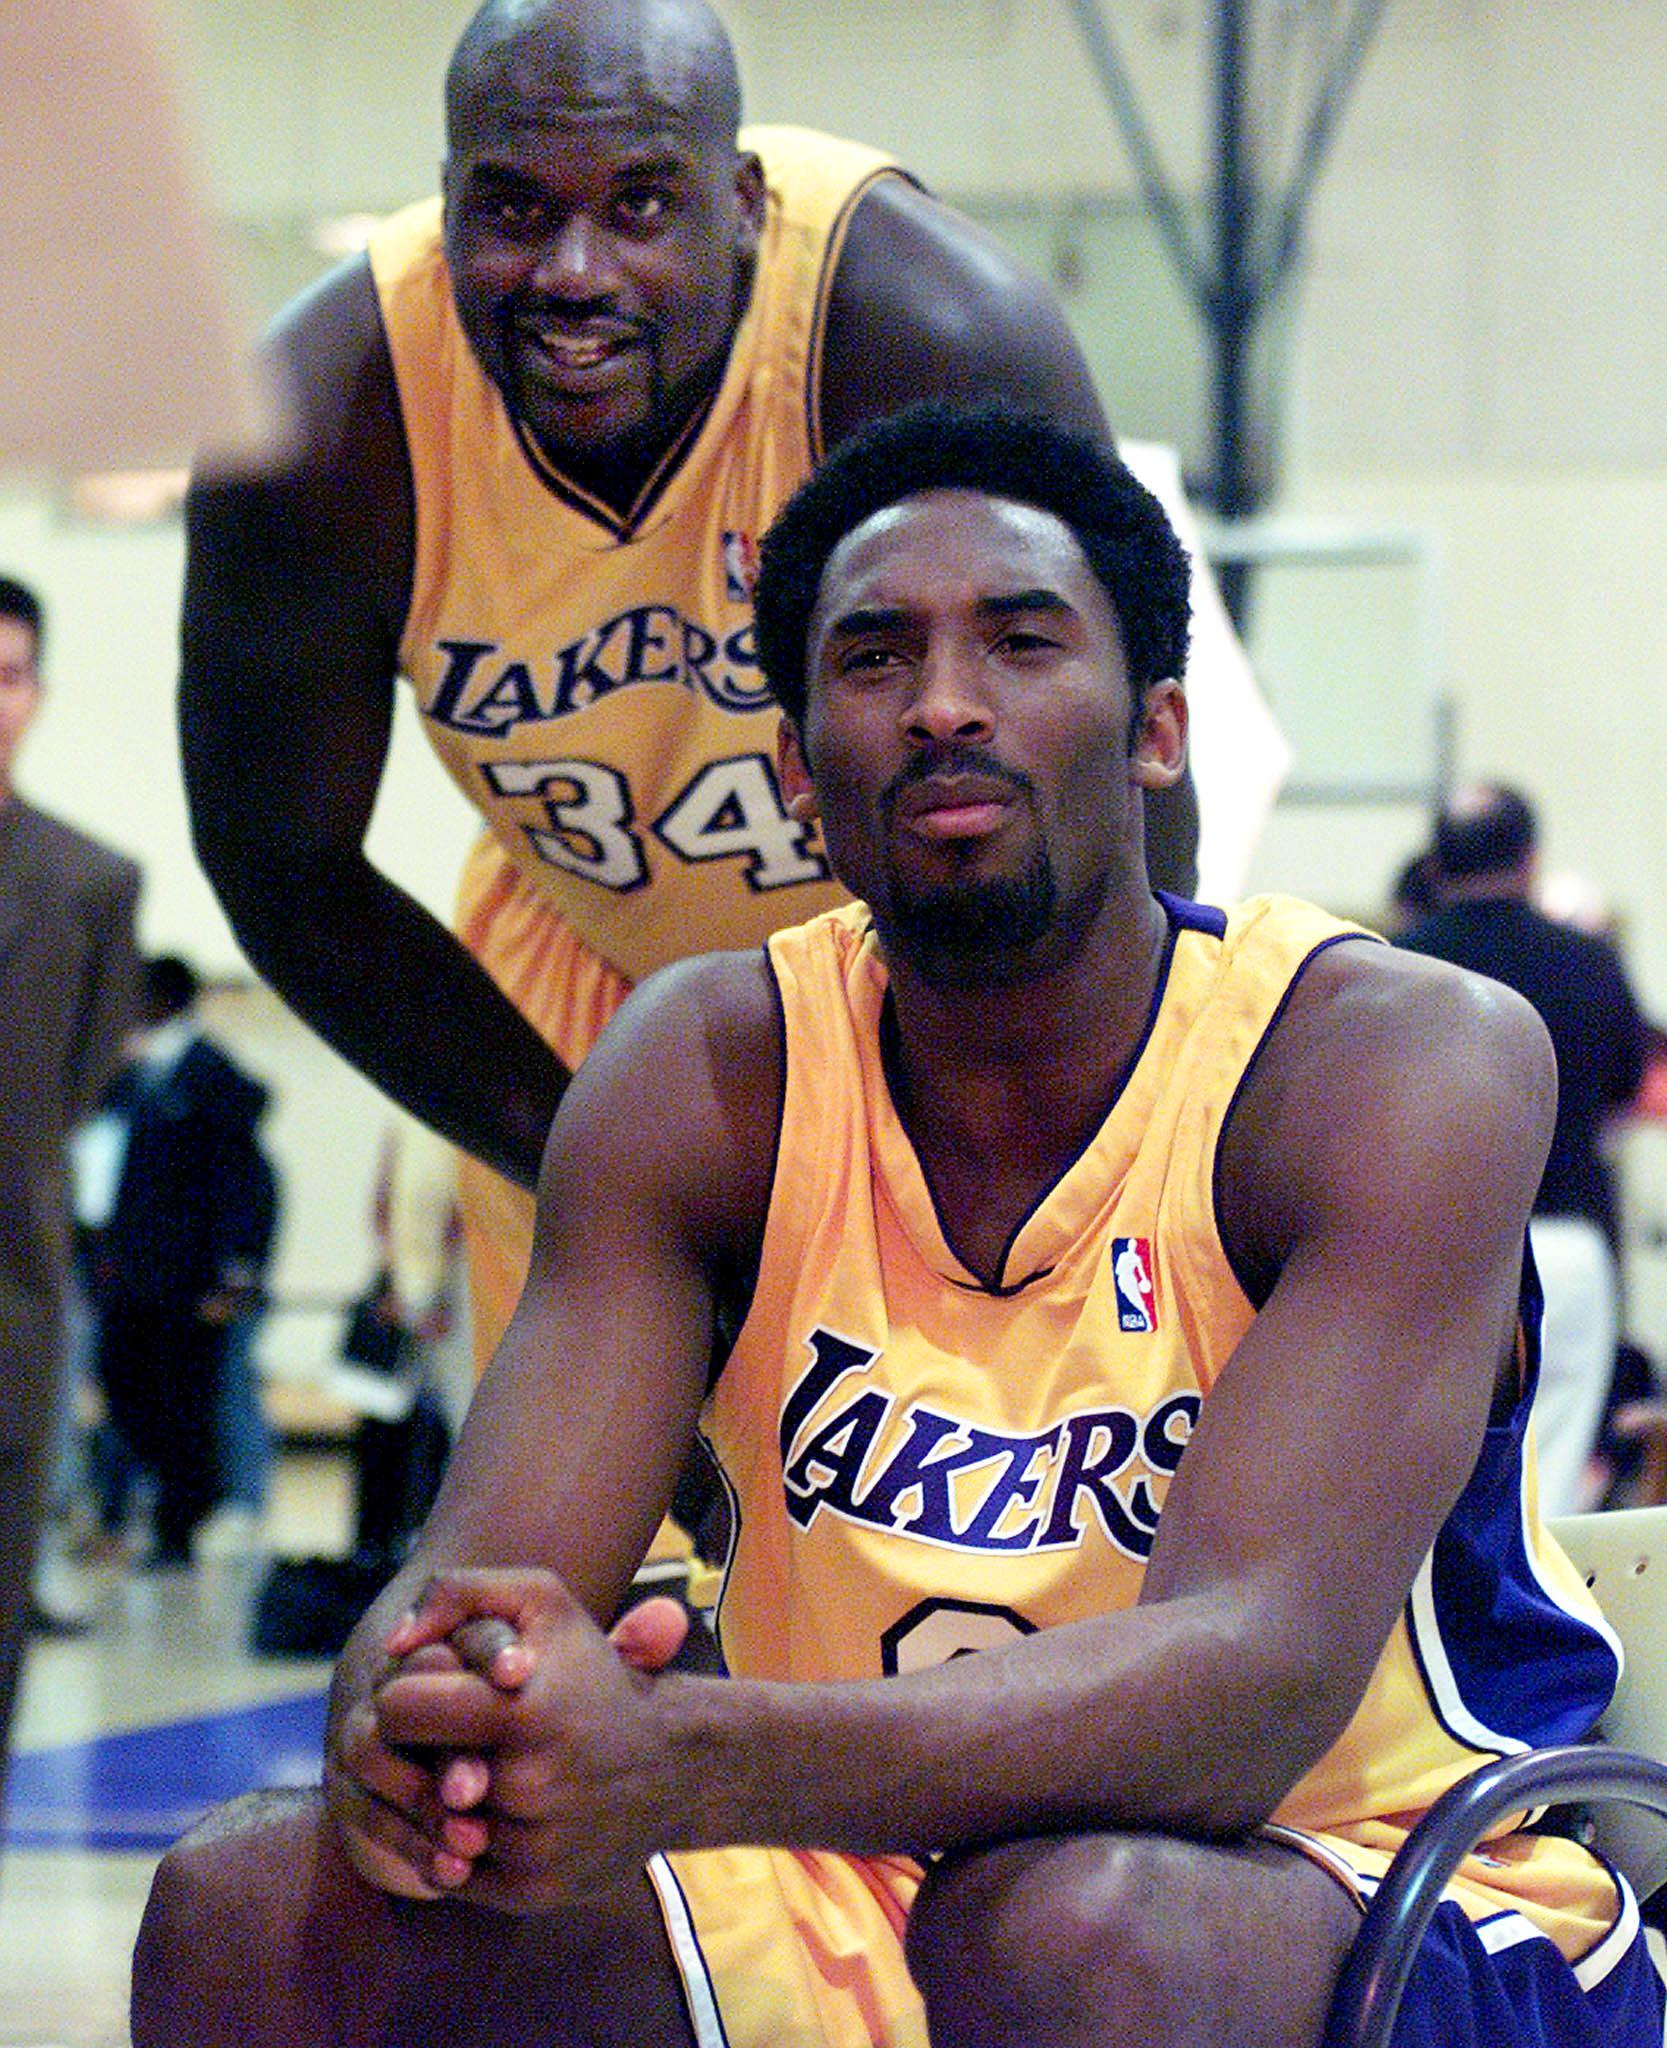 Shq e Kobe nel 2000 Scott Nelson/AFP/Getty Images)